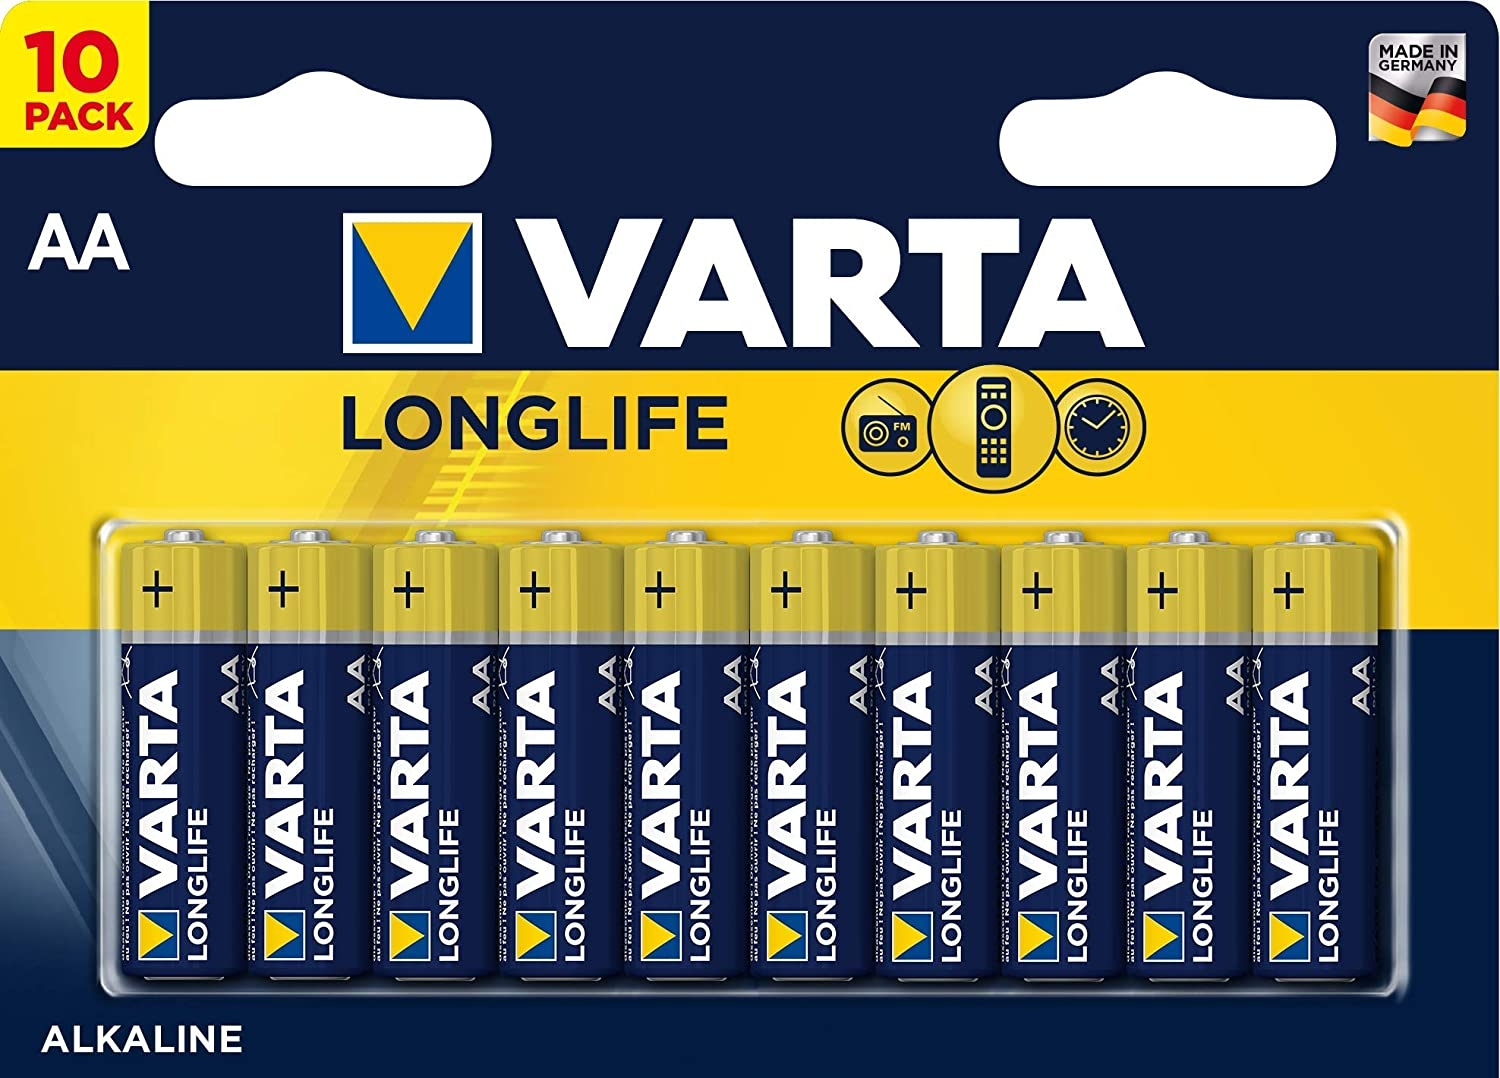 Varta Longlife, Retail Blister (10-Pack)